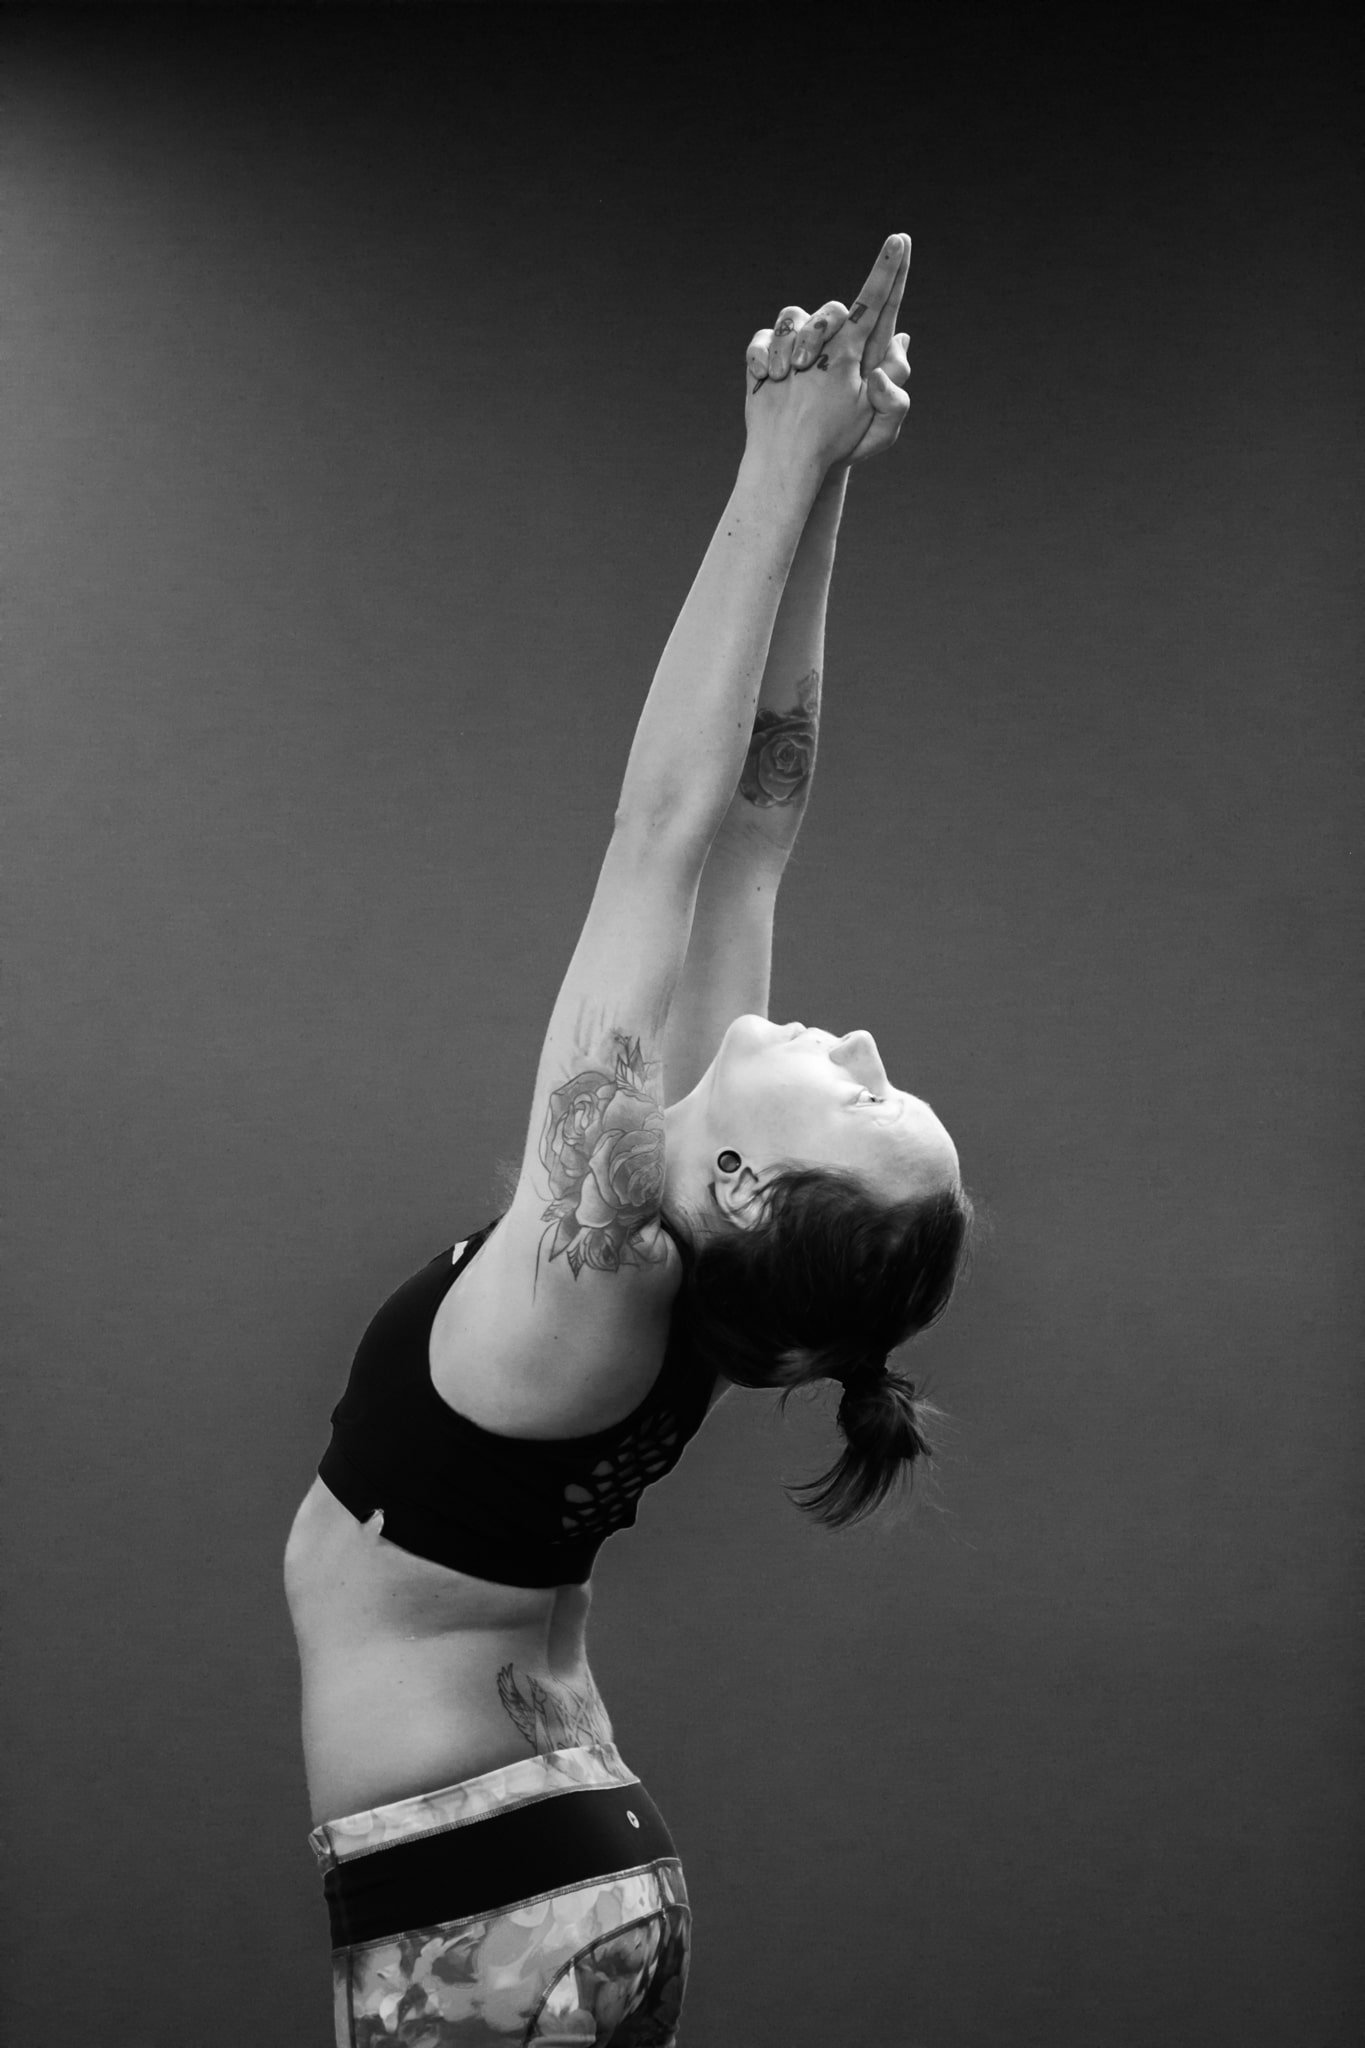 Woman Yoga Practitioner 2